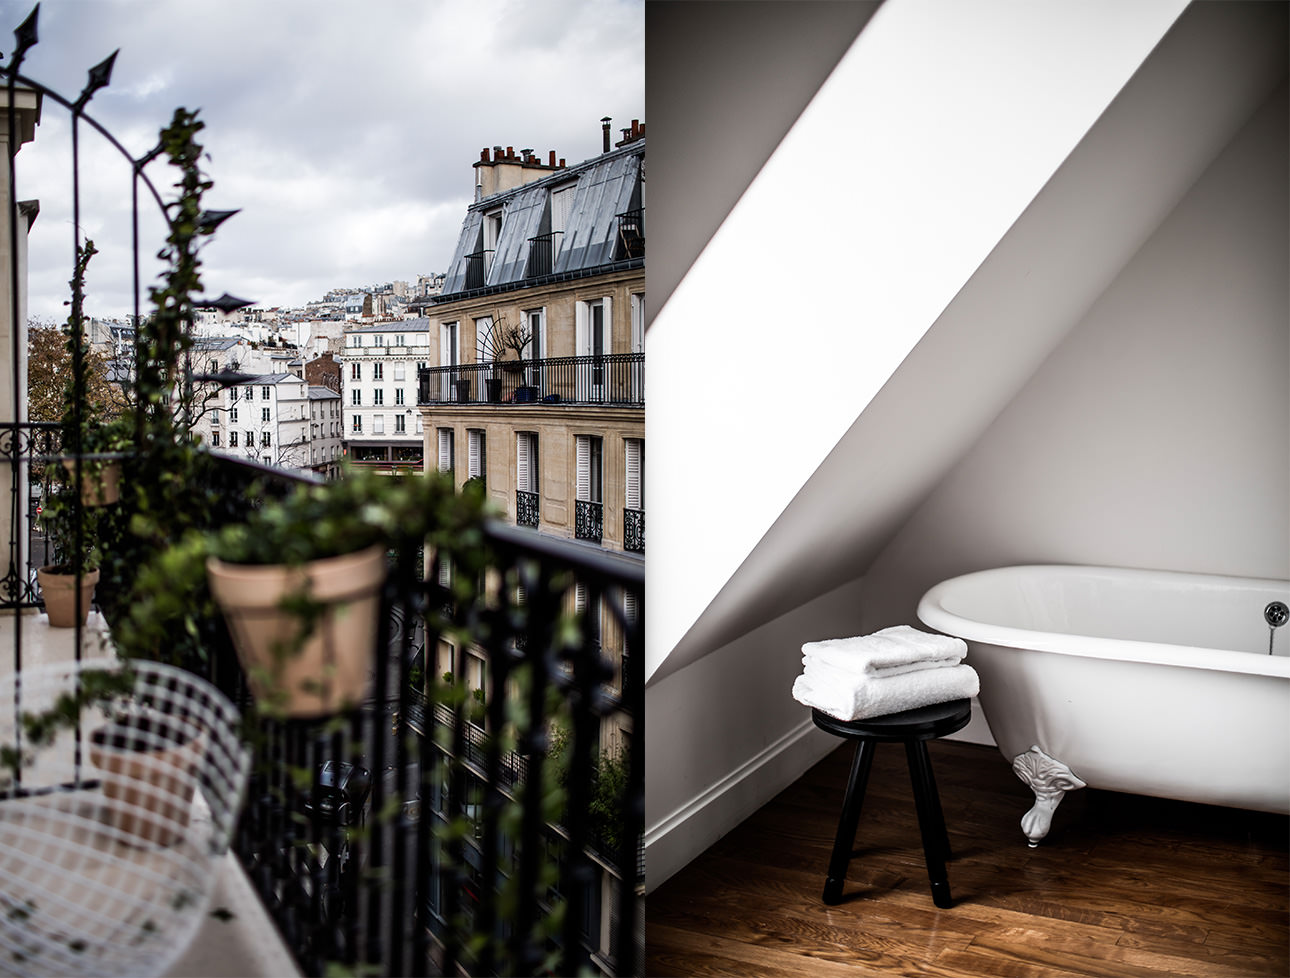 le-pigalle-hotel-room-view-bathroom-tub